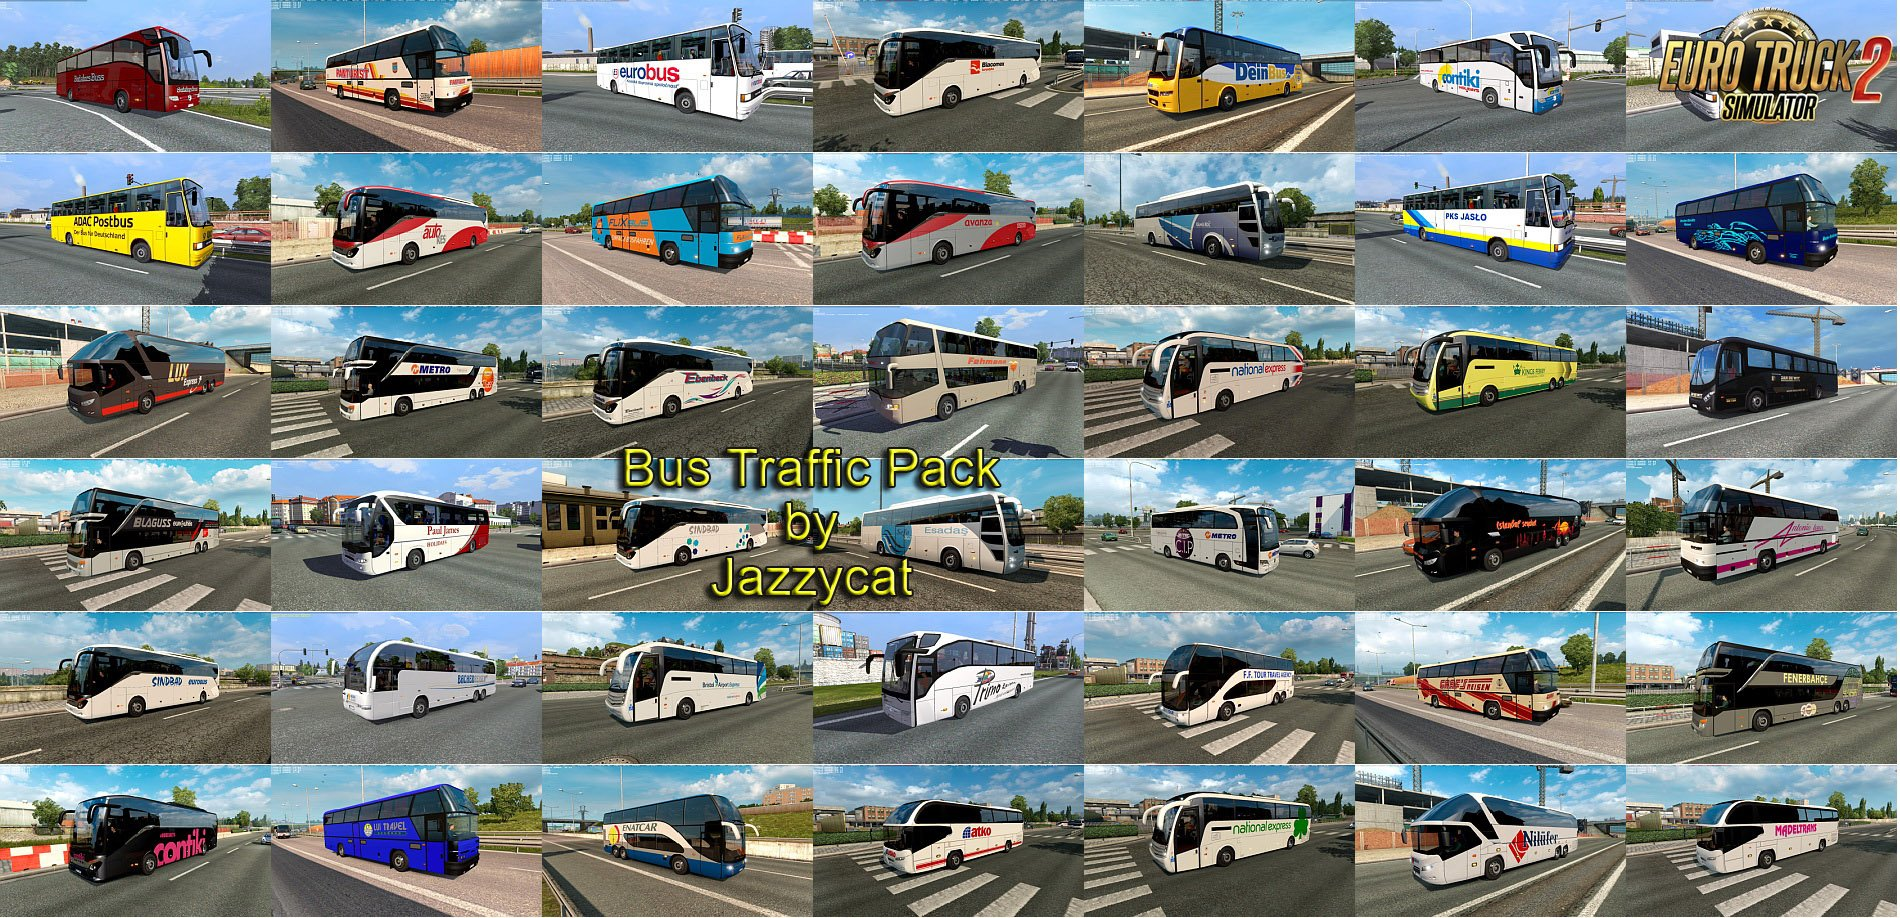 Bus Traffic Pack v3.9 by Jazzycat